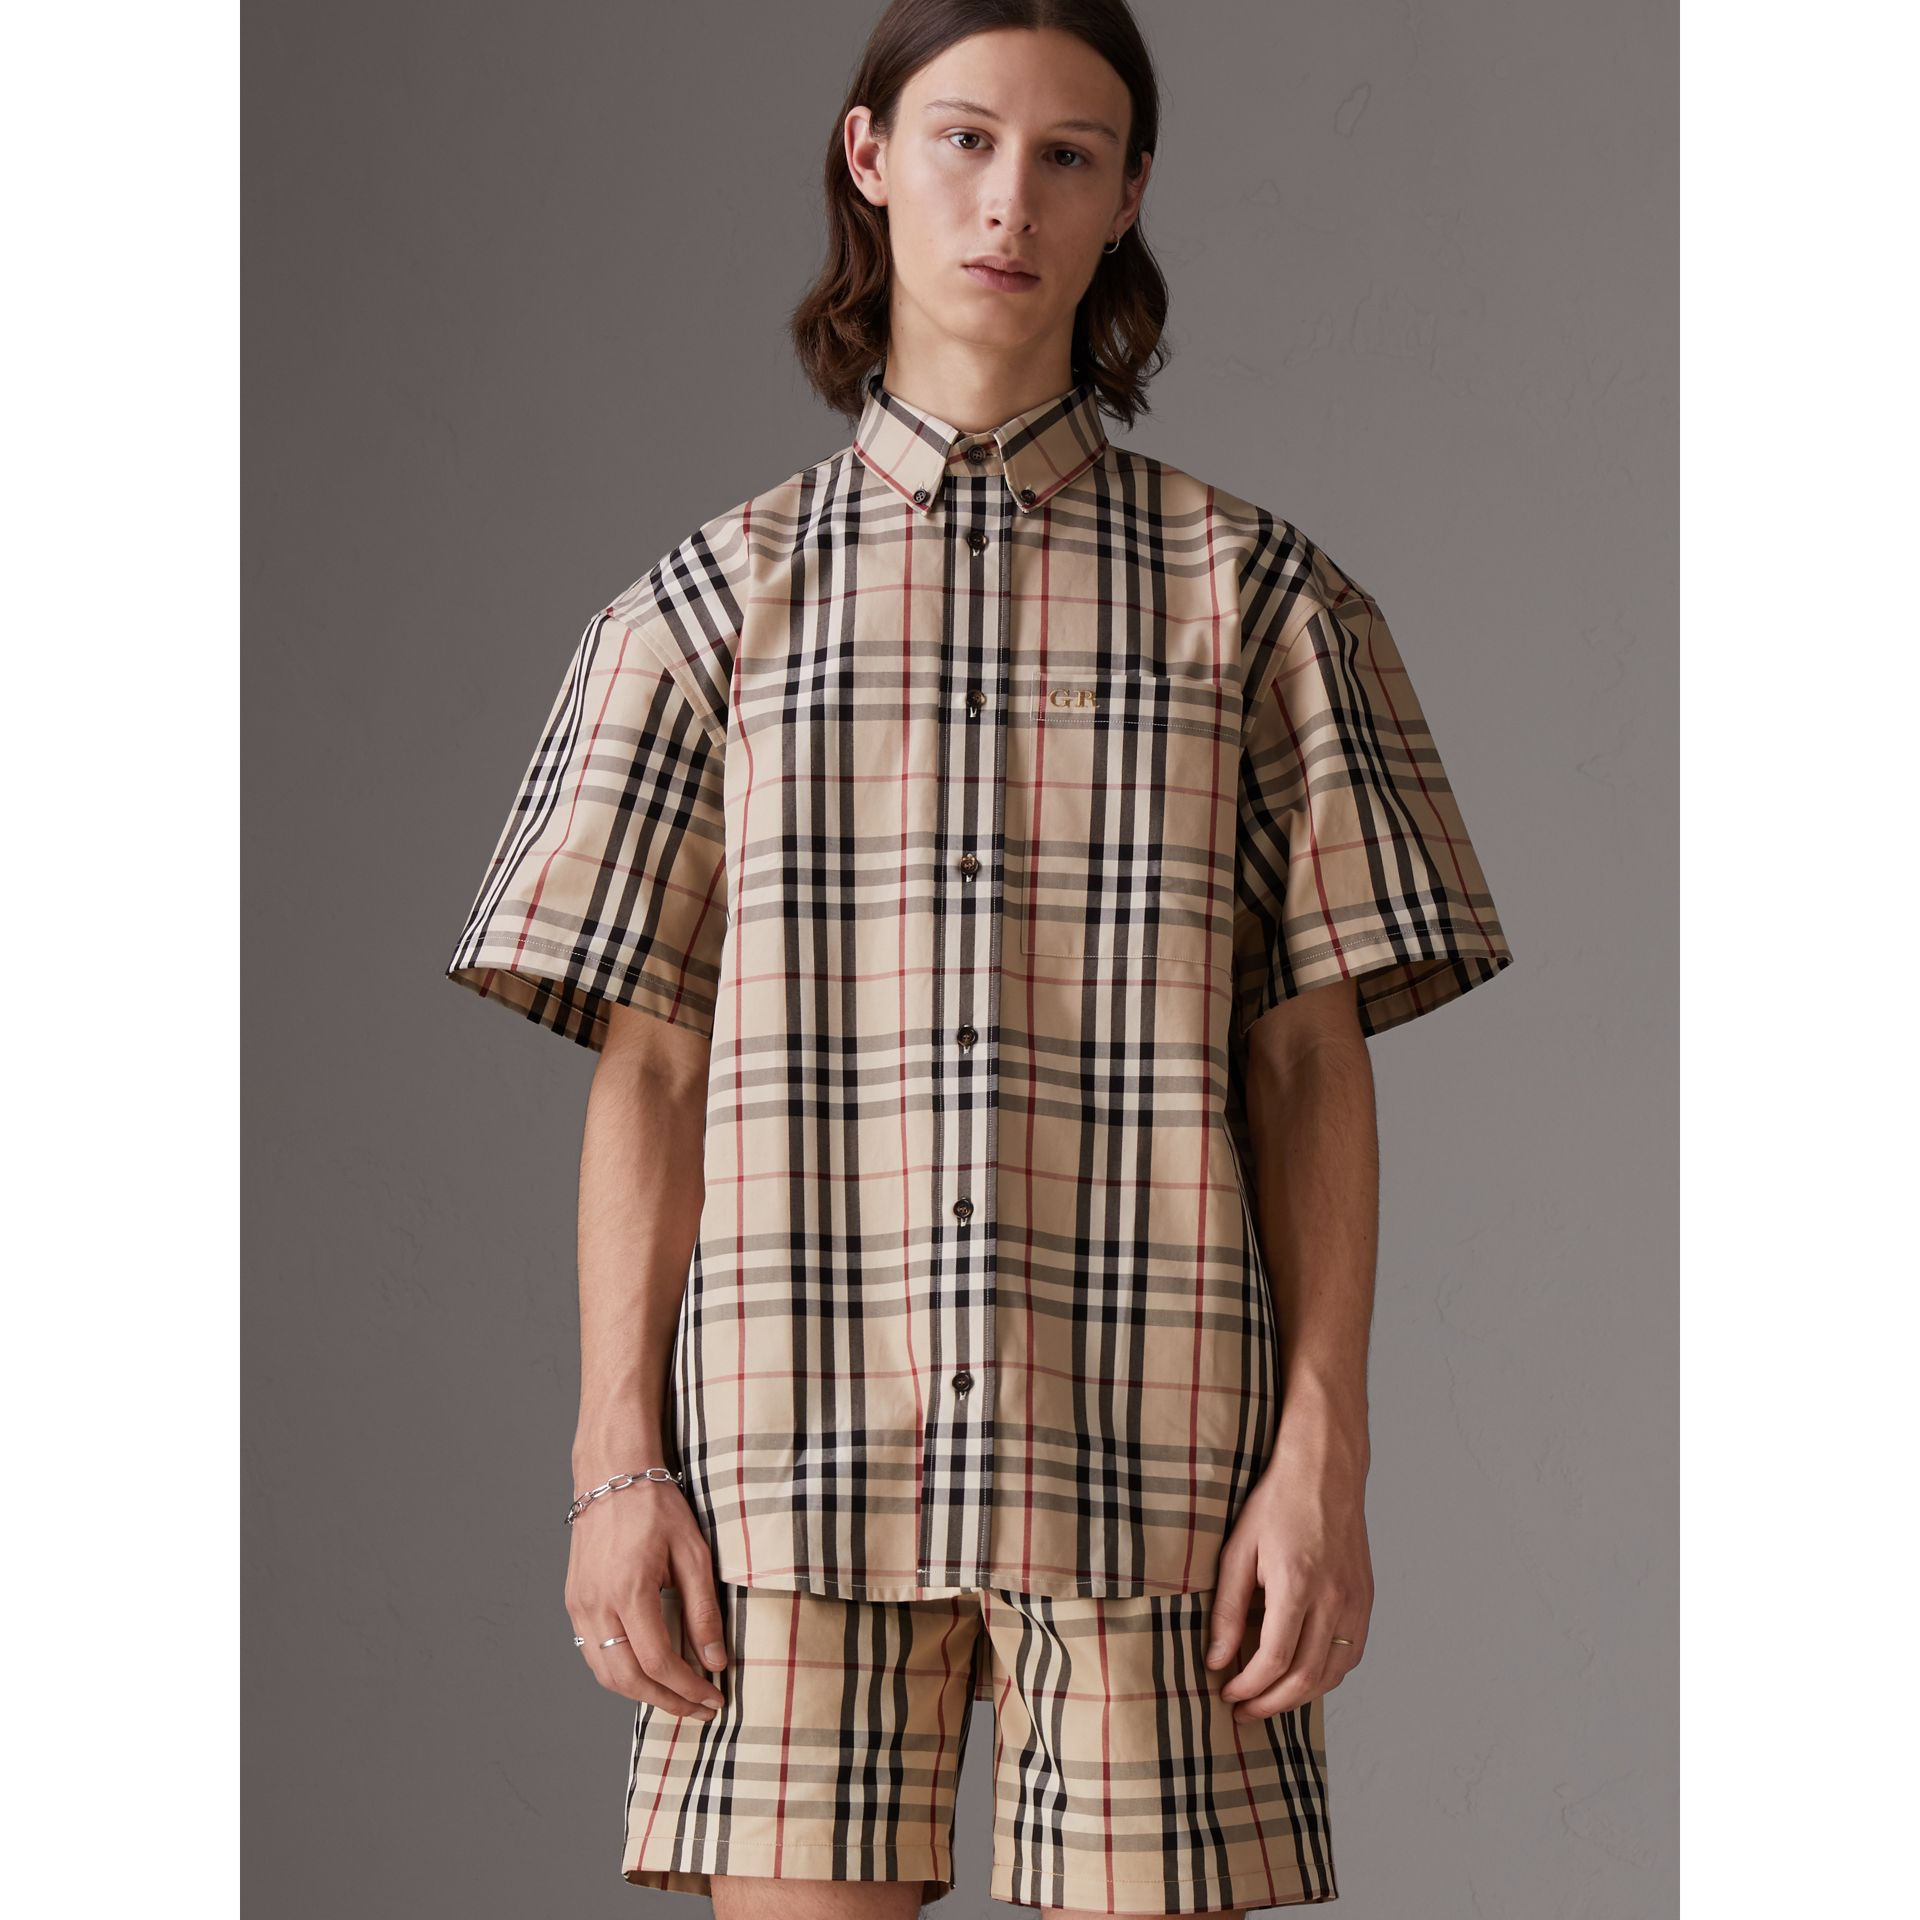 Gosha x Burberry Short-sleeve Check Shirt in Honey - Men | Burberry - gallery image 0